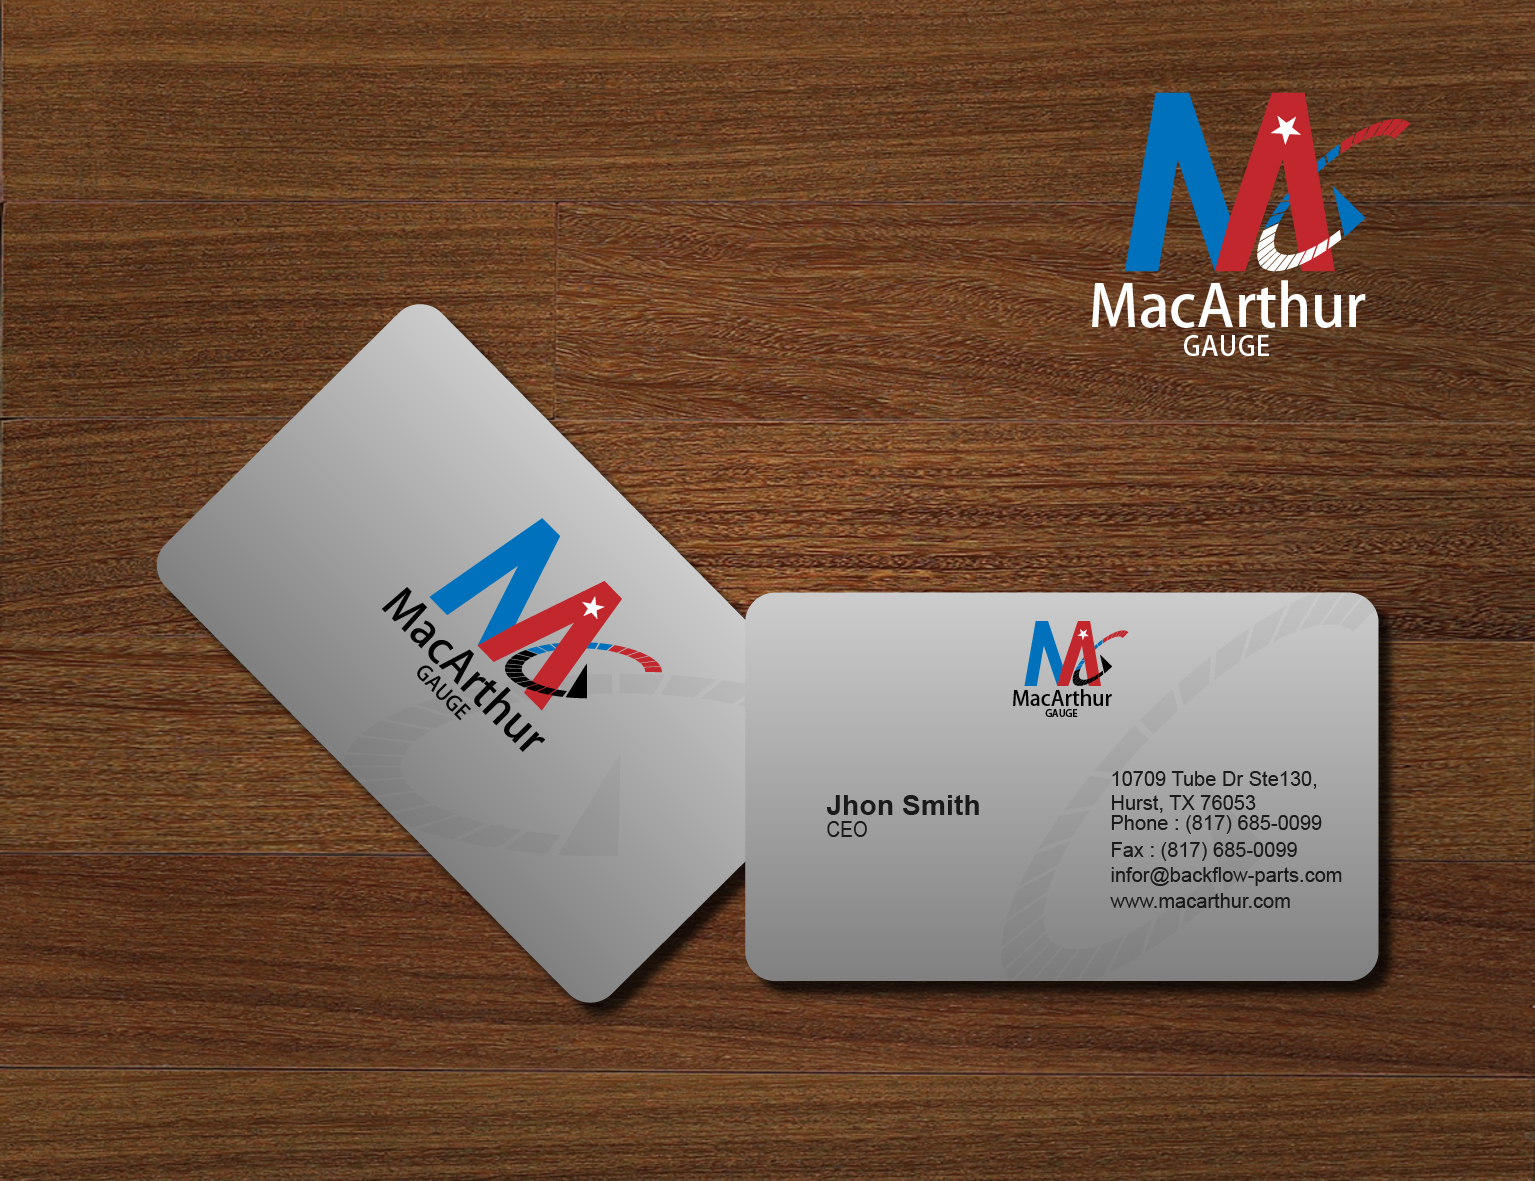 Logo Design by 3draw - Entry No. 212 in the Logo Design Contest Fun Logo Design for MacArthur Gauge.